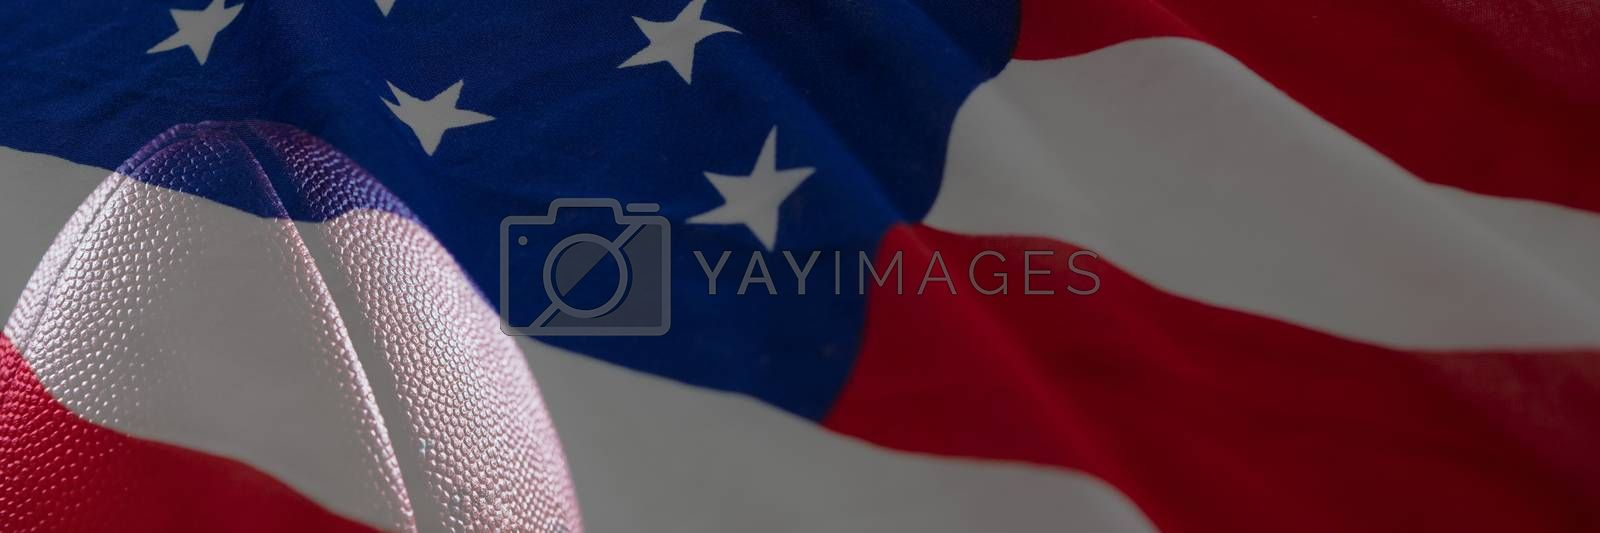 American flag with stars and stripes against rugby ball